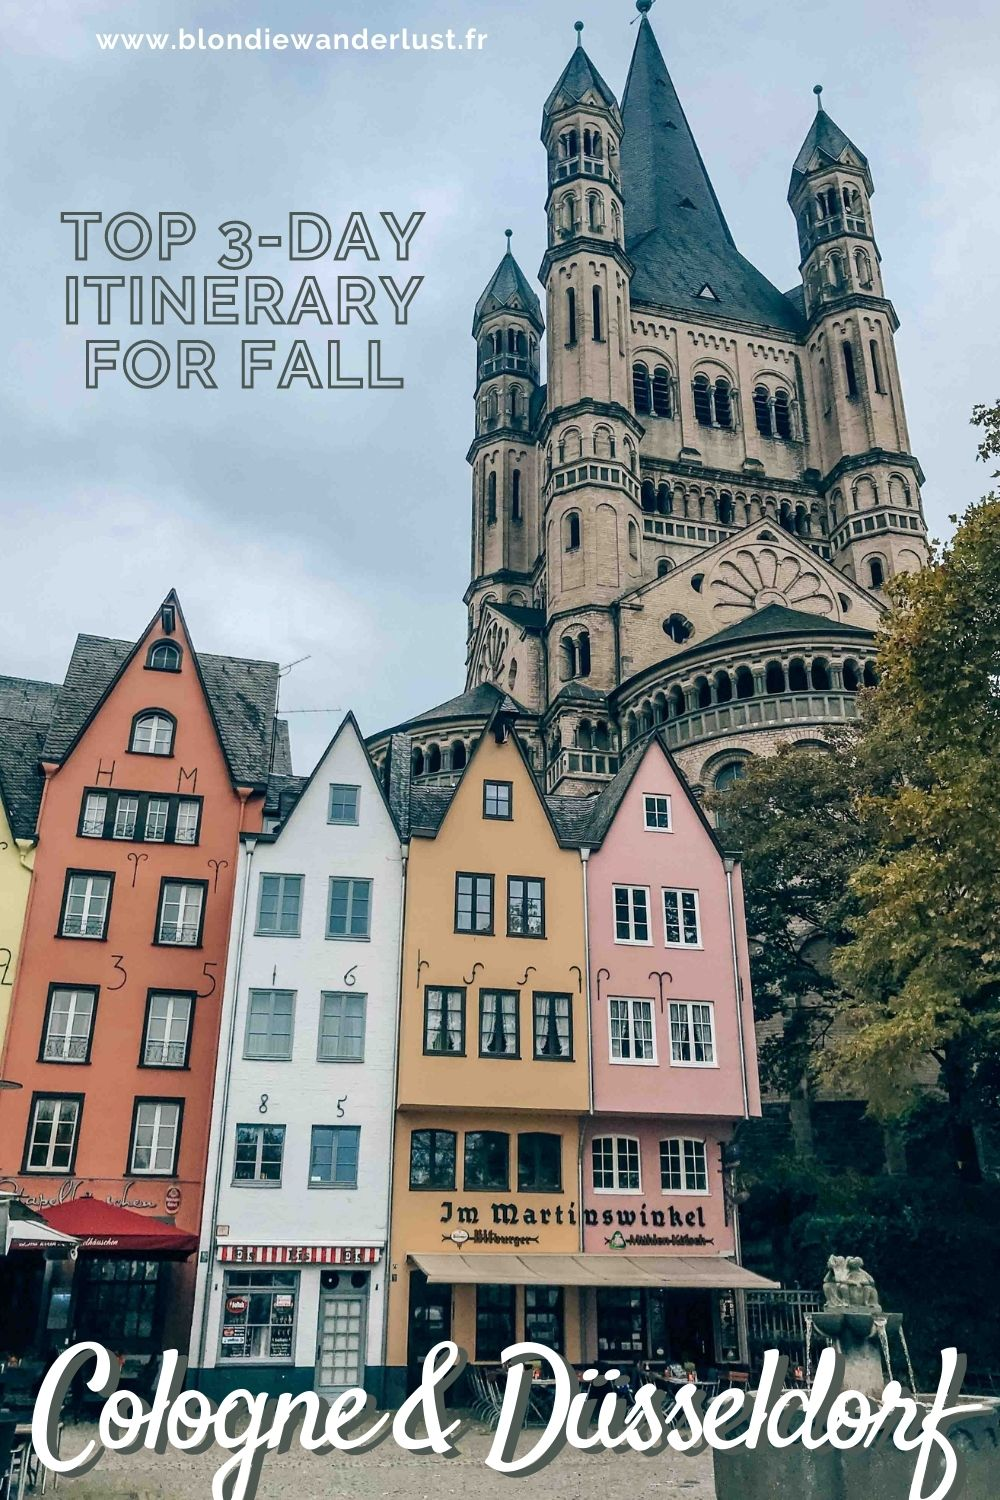 Top 3-day itinerary for Fall in Cologne & Düsseldorf